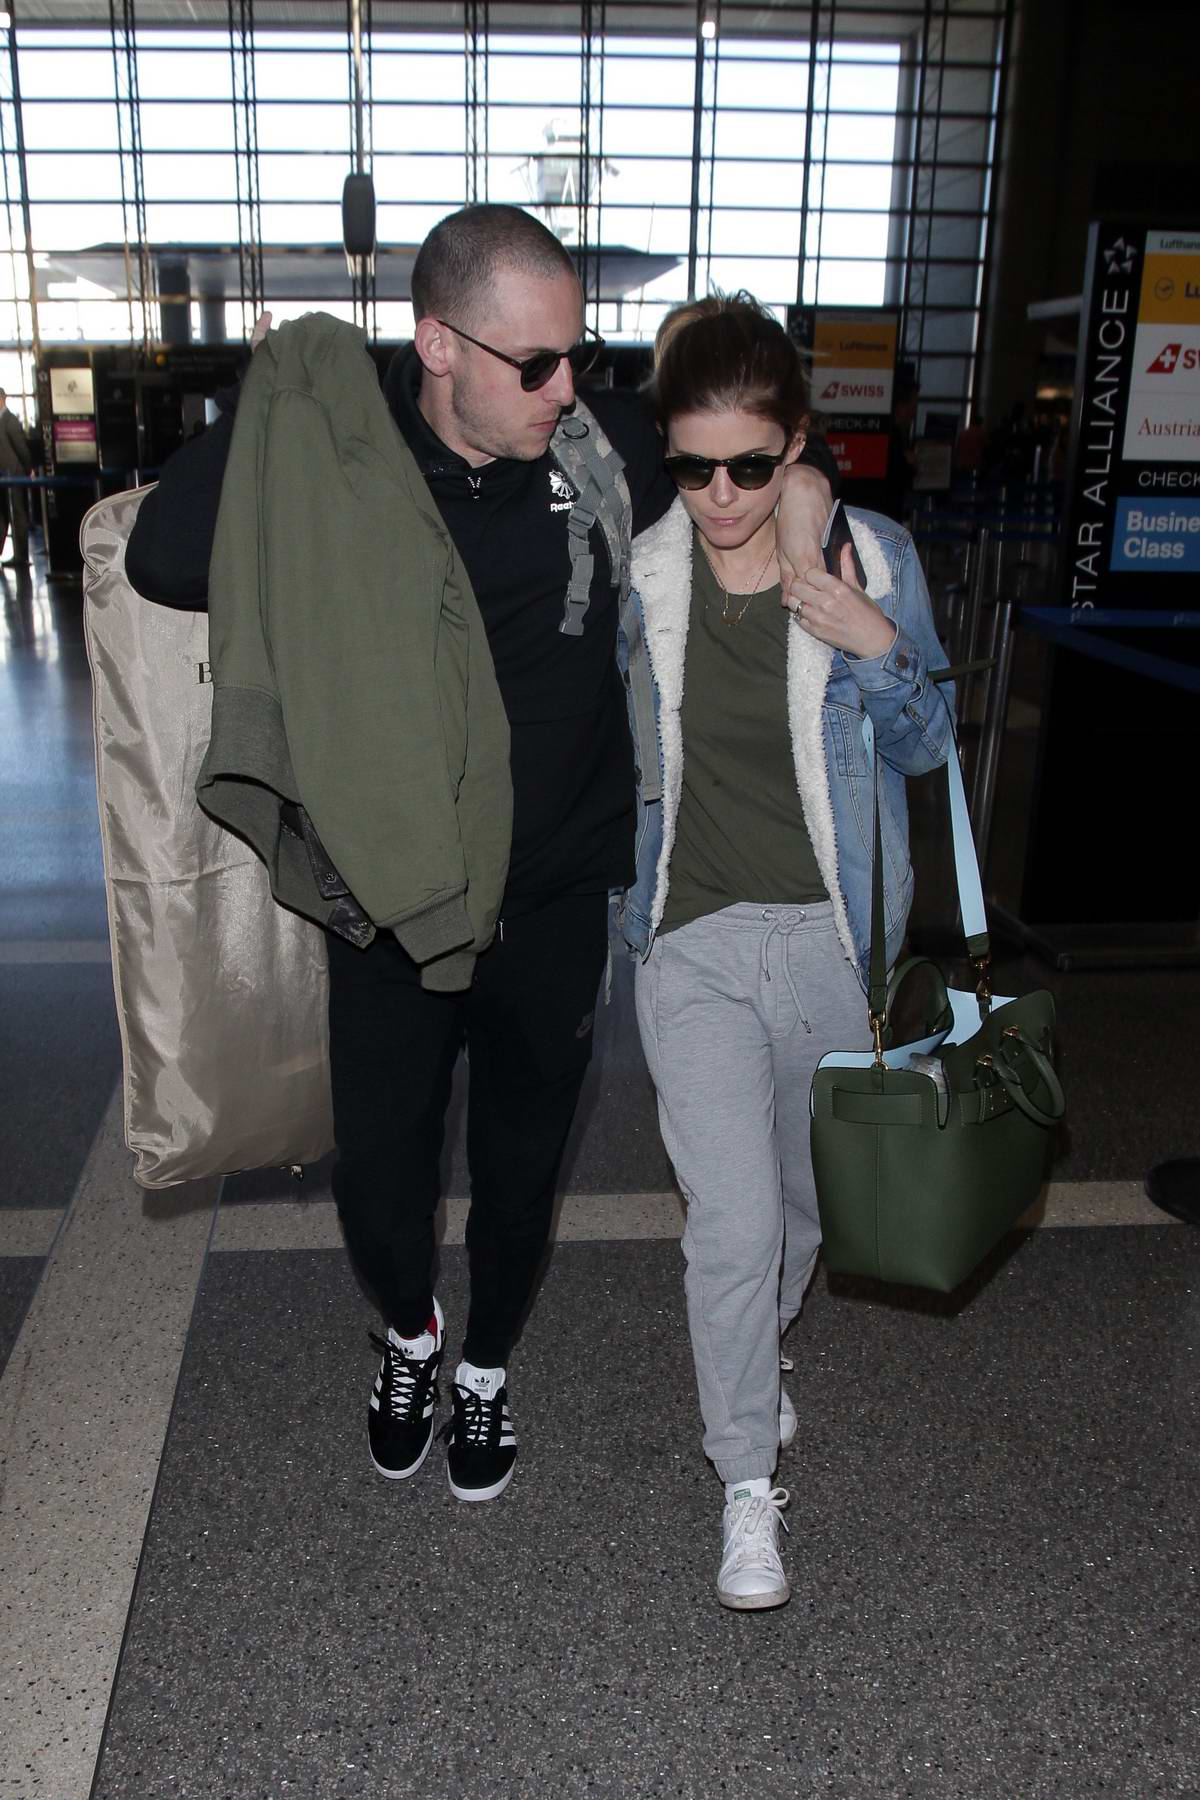 Kate Mara and Jamie Bell arrives at LAX airport to catch flight out of Los Angeles